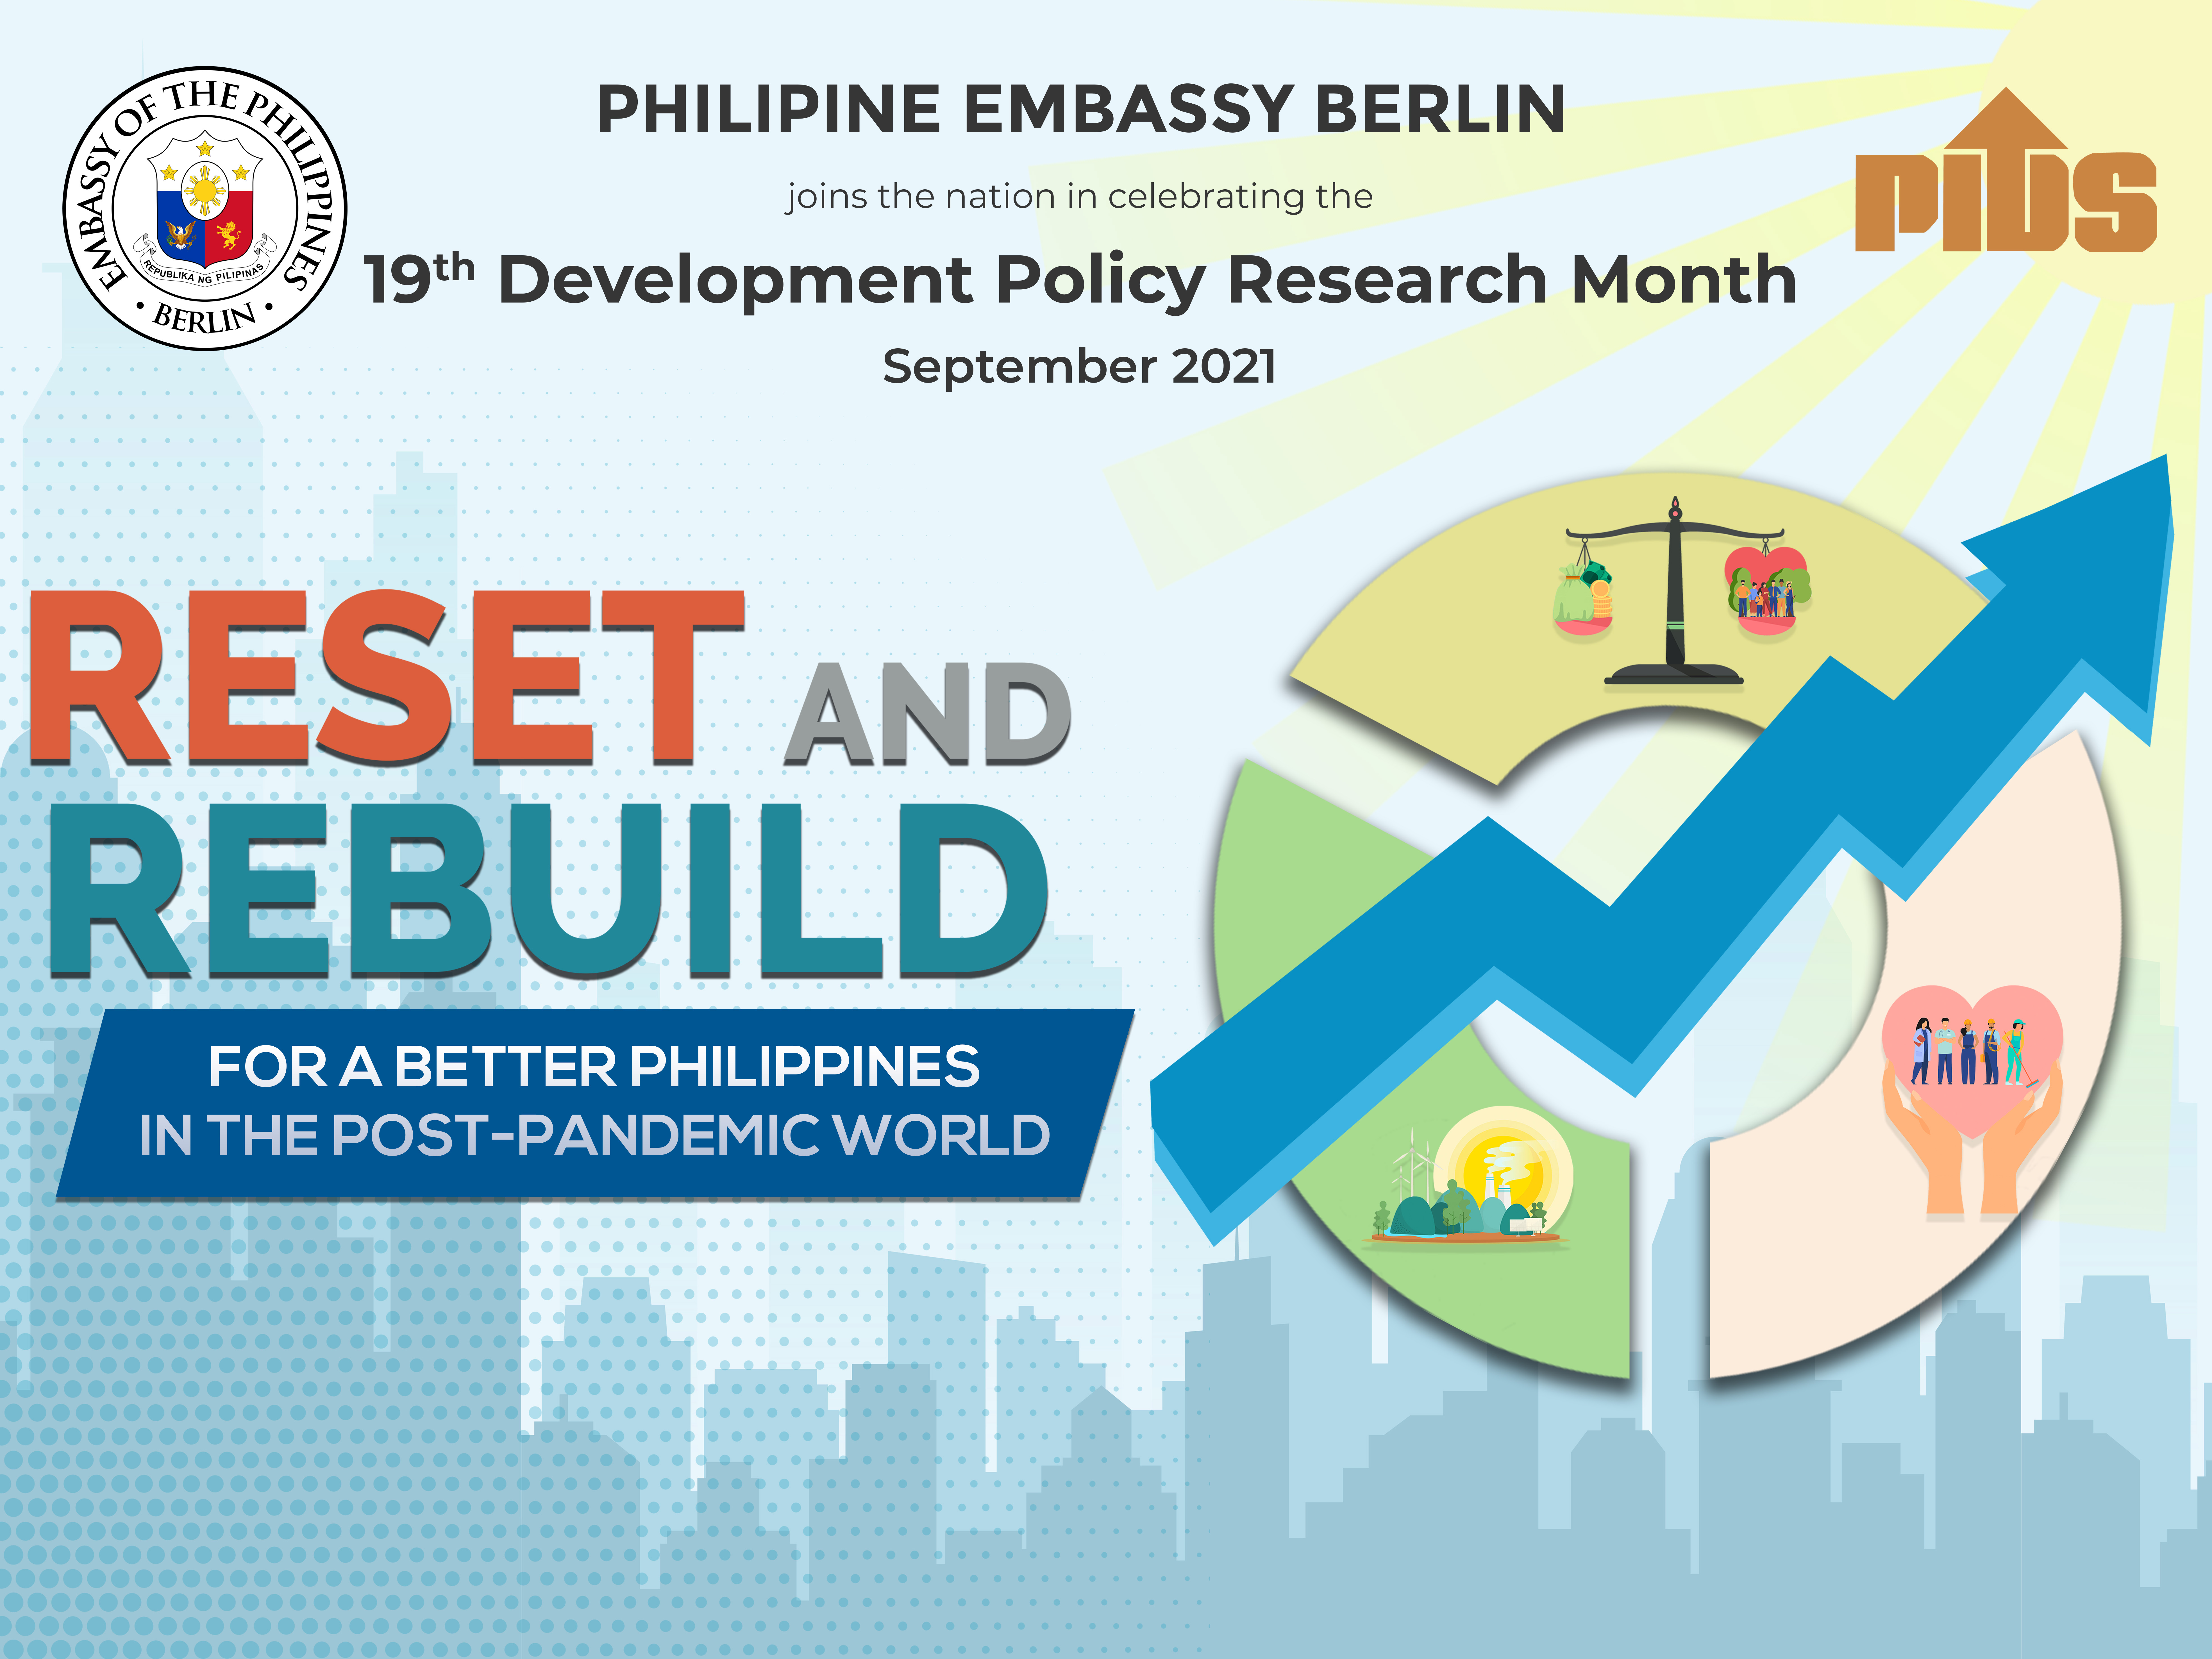 DEVELOPMENT POLICY RESEARCH MONTH